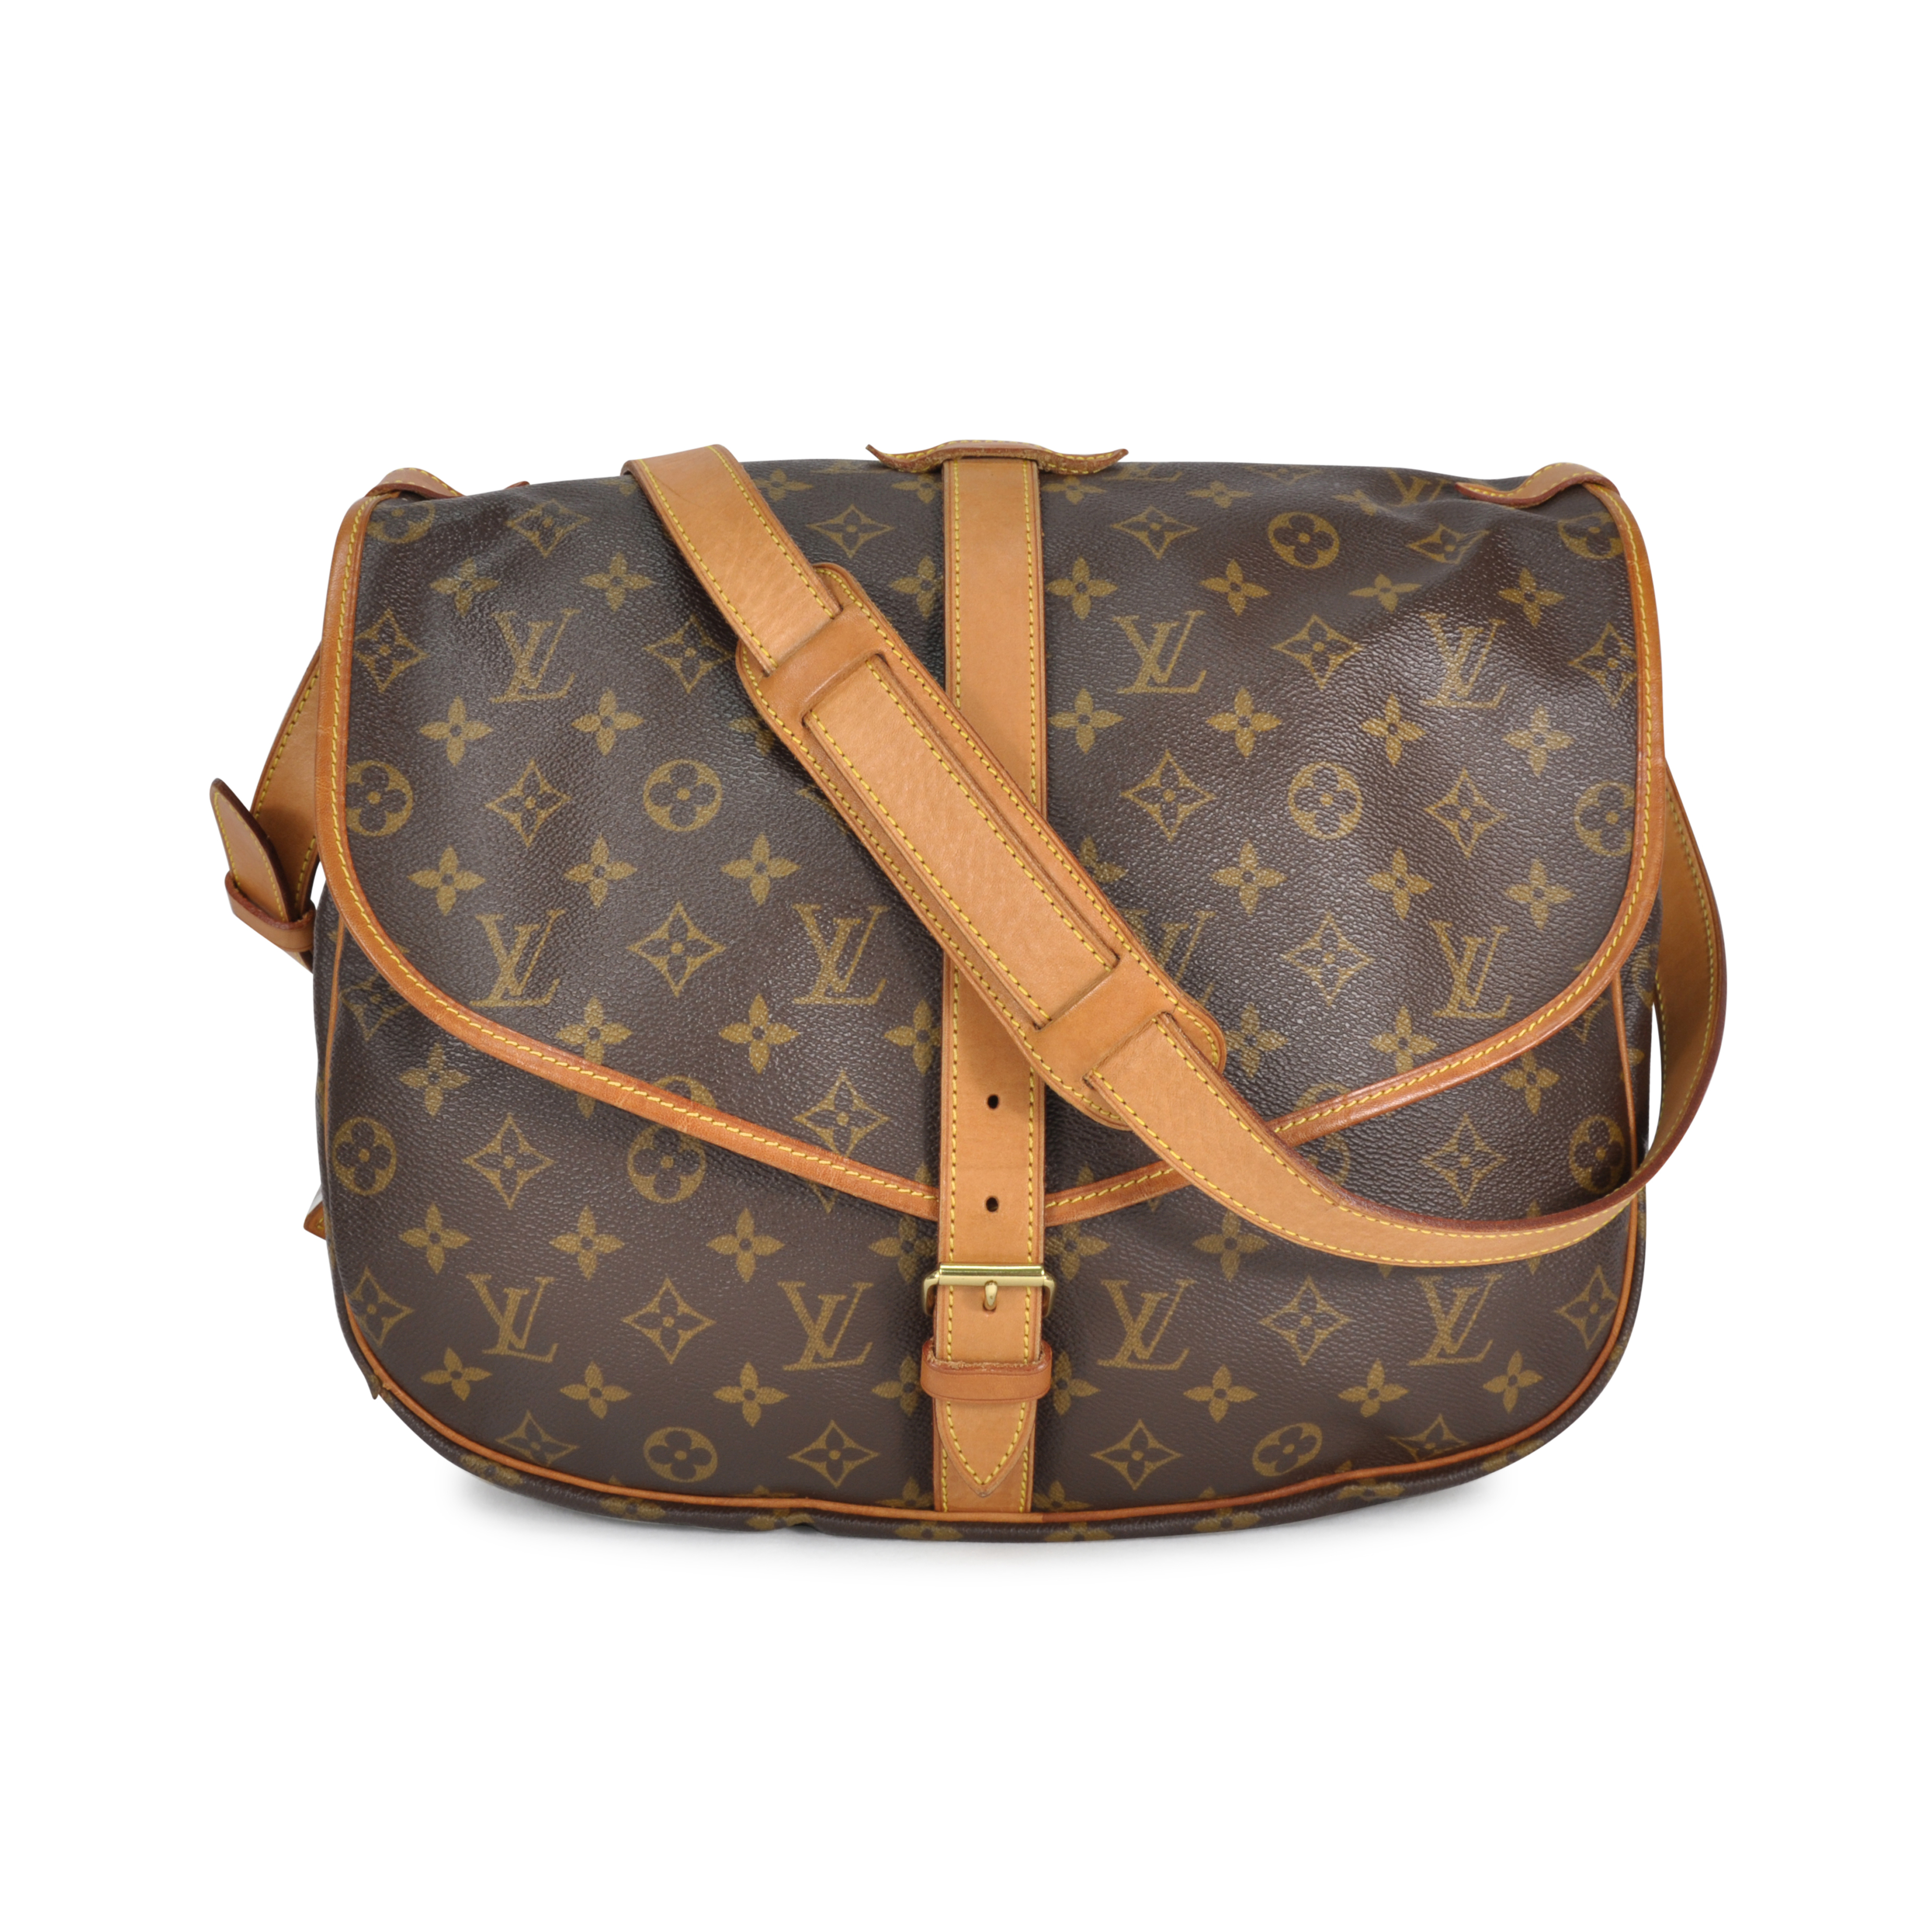 db77f280b3d6 Authentic Vintage Louis Vuitton Saumur Crossbody bag (TFC-107-00037 ...